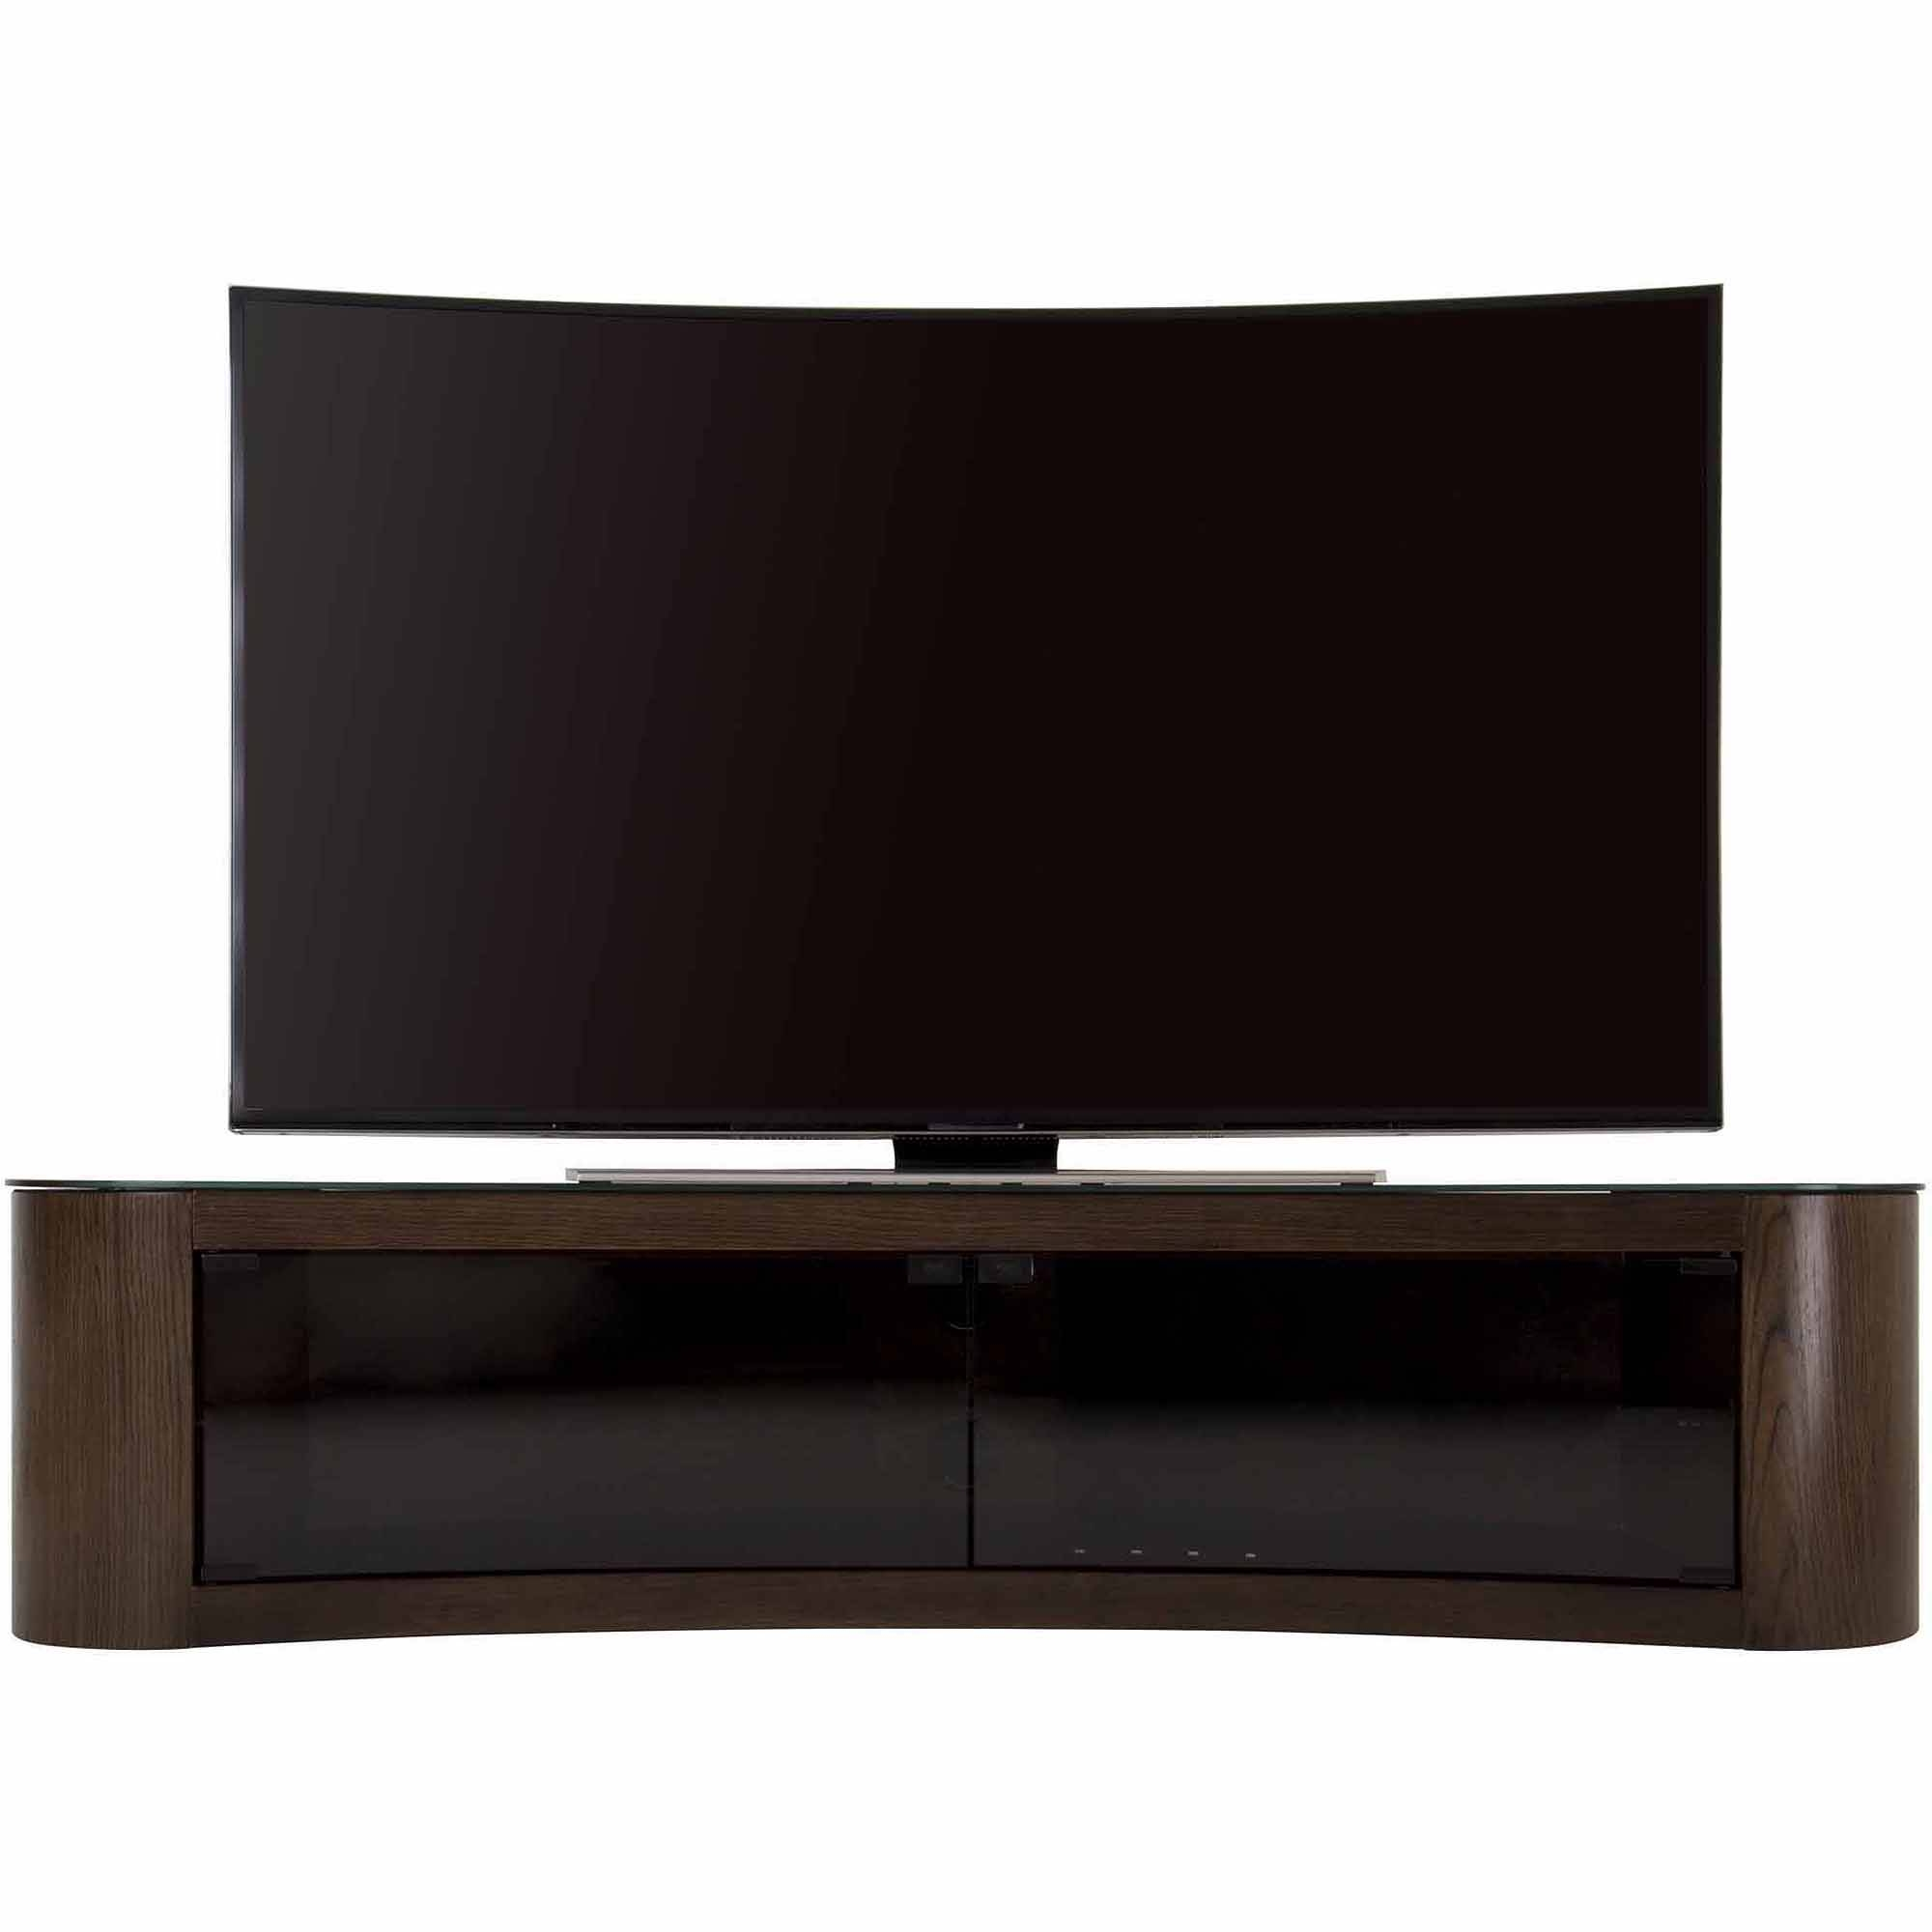 "Avf Bay Curved Tv Stand For Tvs Up To 70"" - Walmart for Curve Tv Stands (Image 1 of 15)"